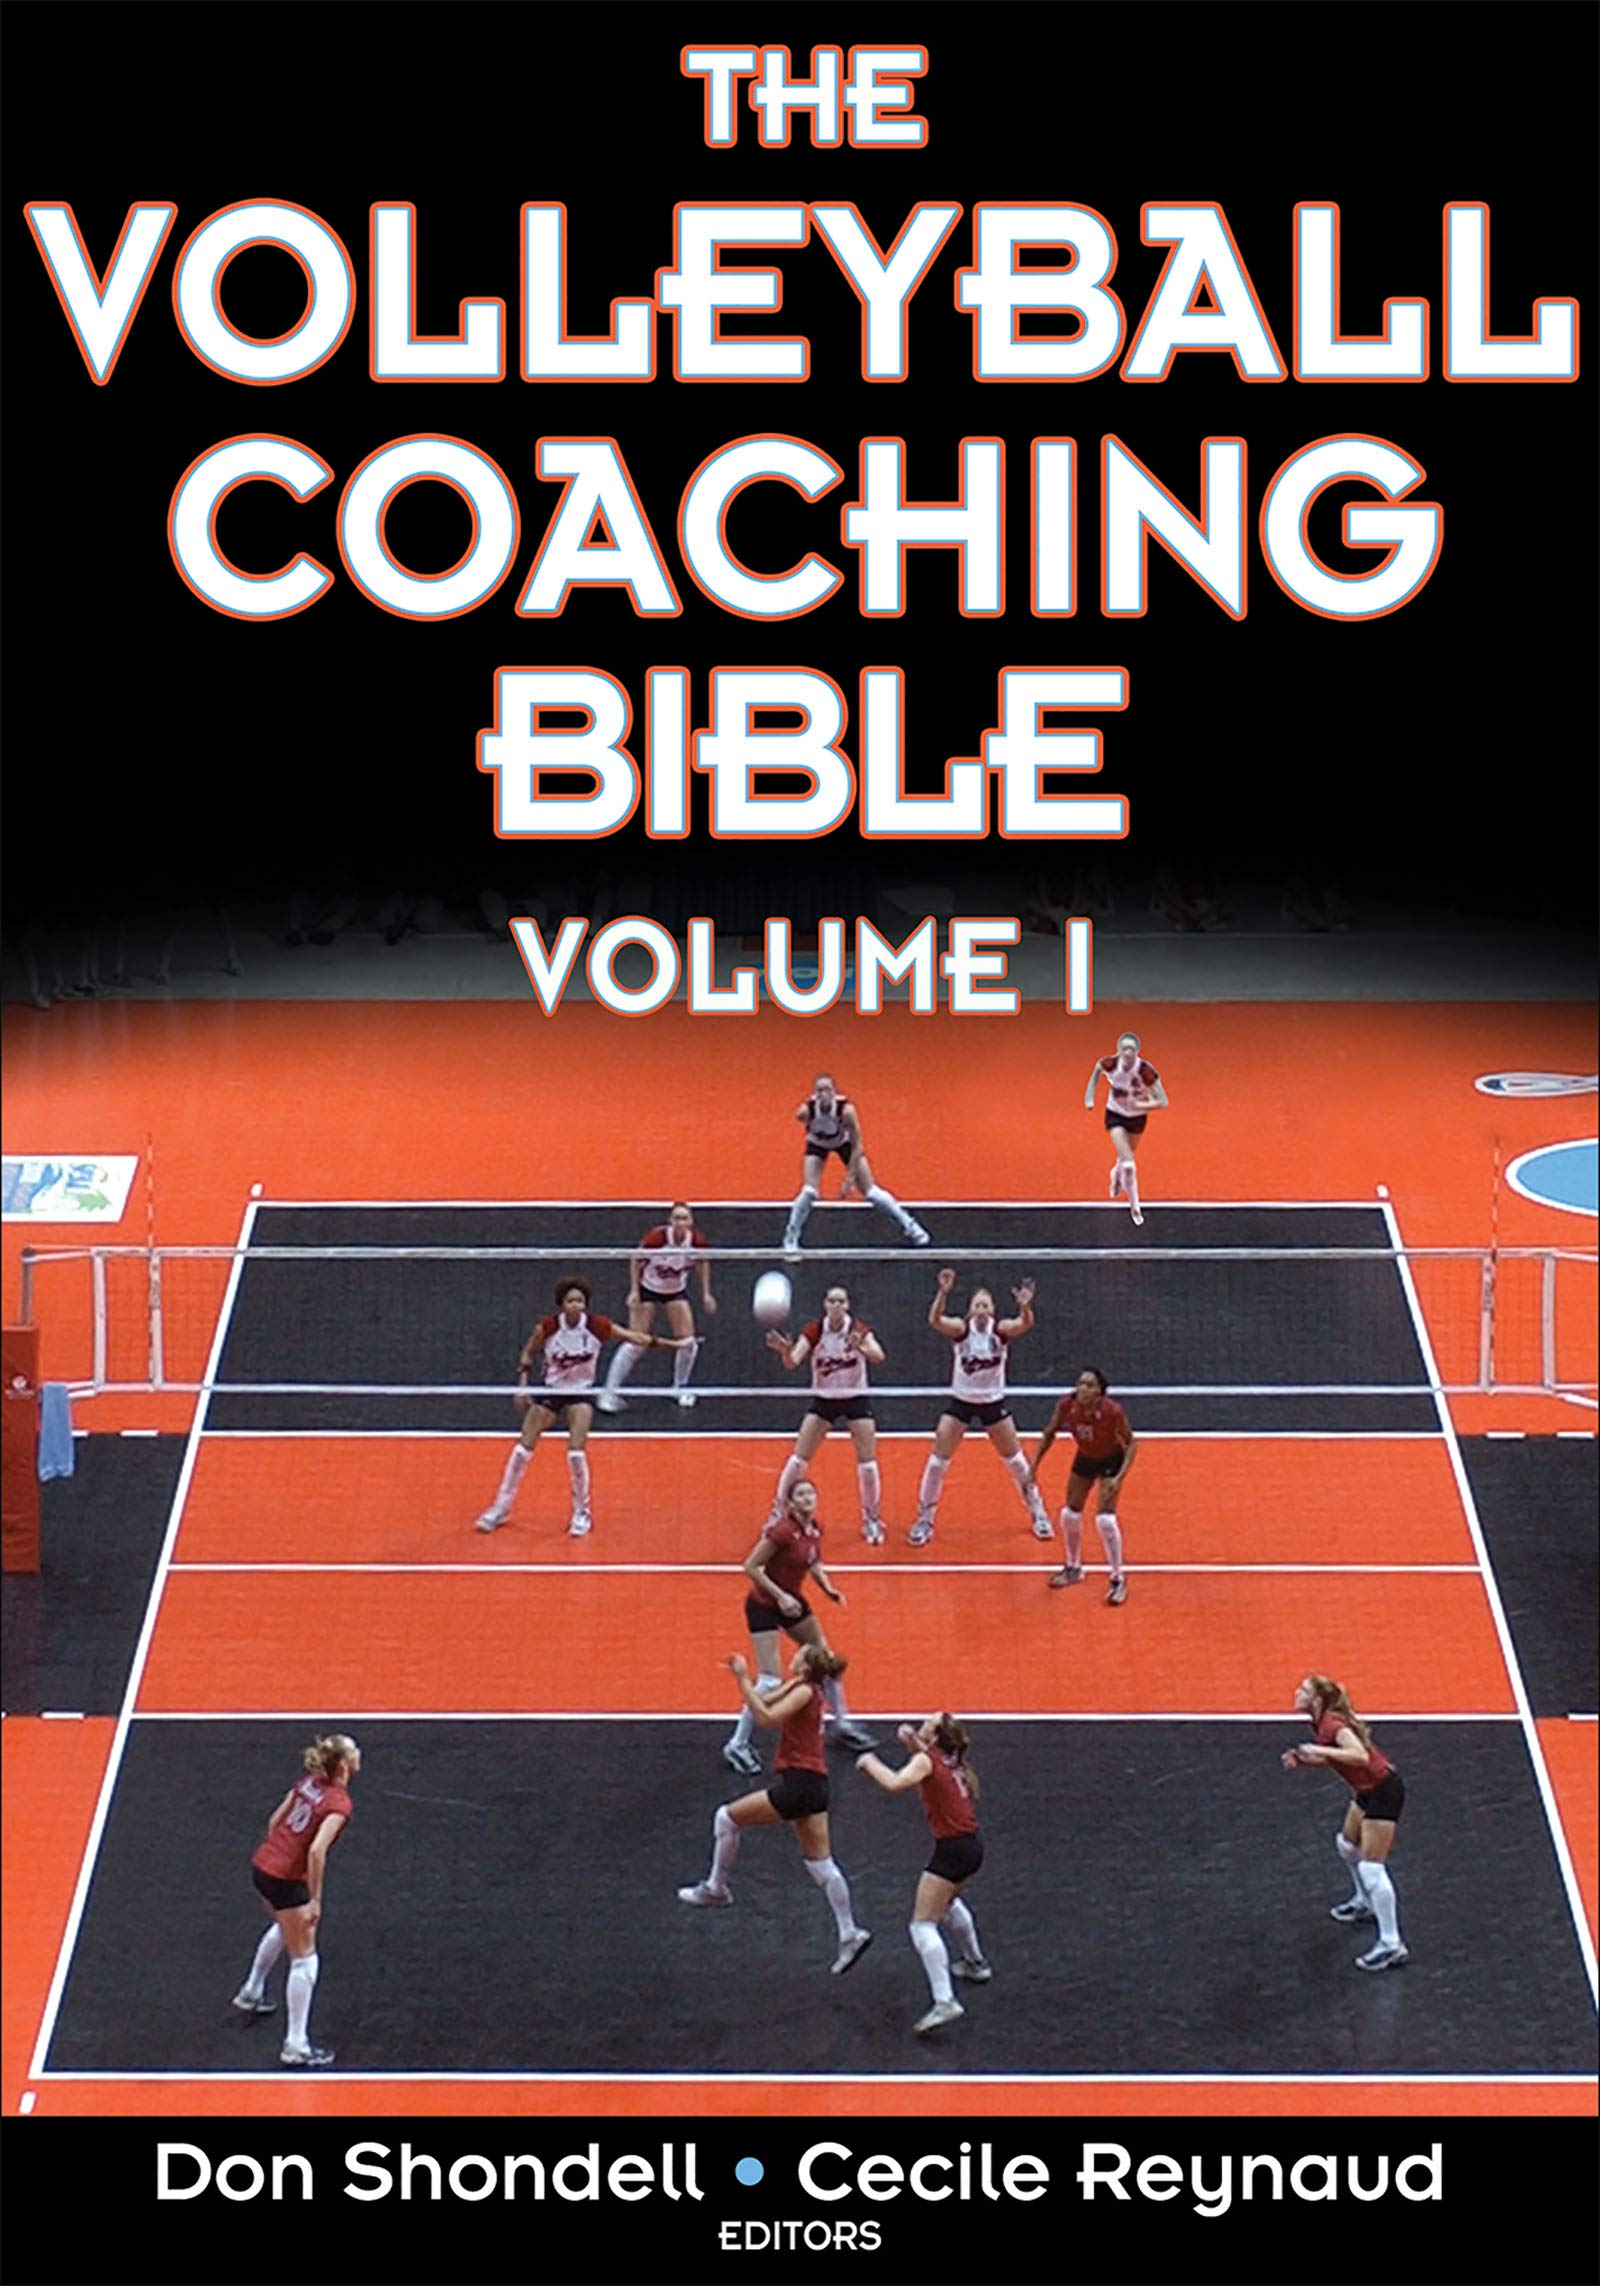 The Volleyball Coaching Bible: Donald S Shondell, Cecile B Reynaud, Donald  Shondell, Cecile Reynaud: 9780736039673: Amazon.com: Books